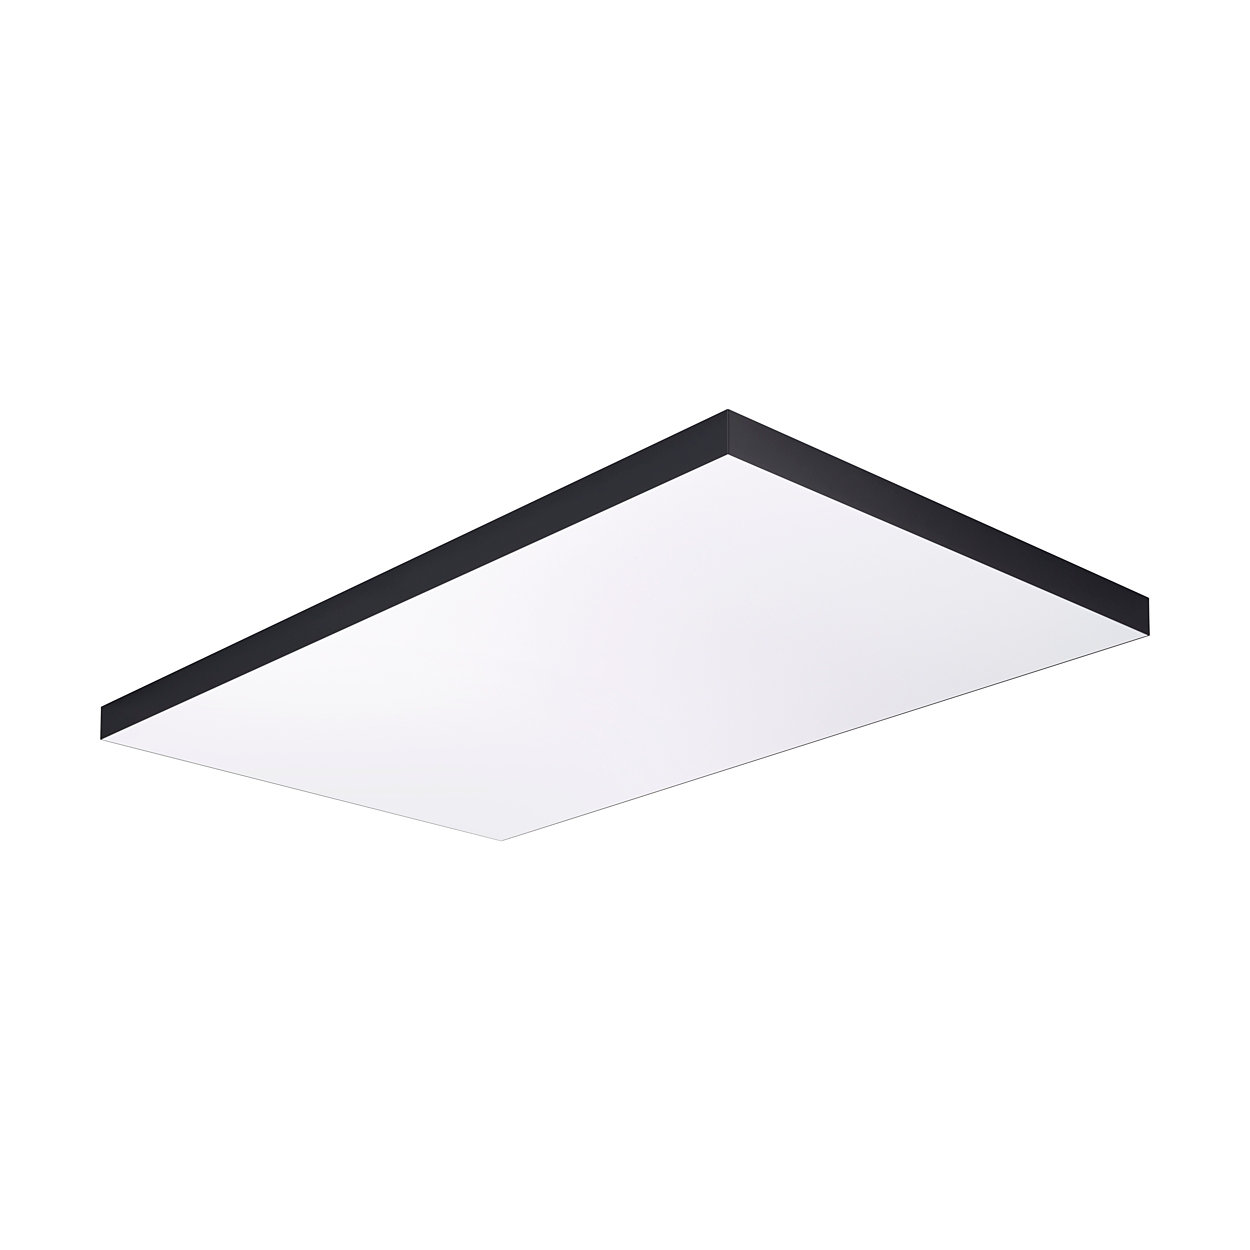 OneSpace luminous ceiling prefab - re-think the ceiling